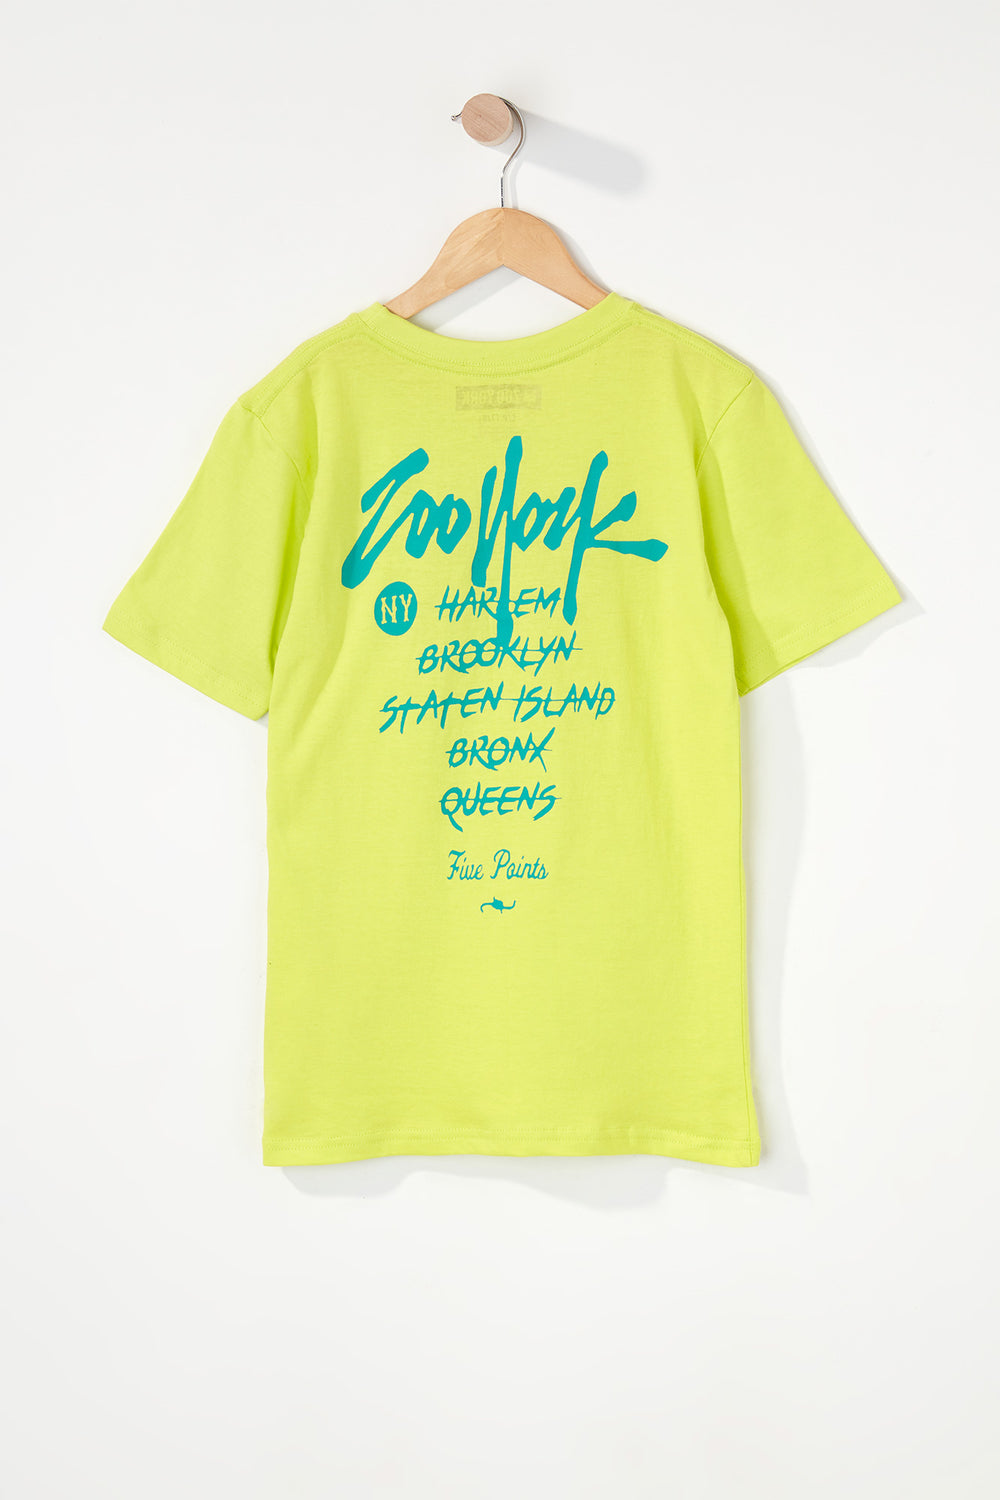 T-Shirt Quartiers NYC Zoo York Garçon Jaune